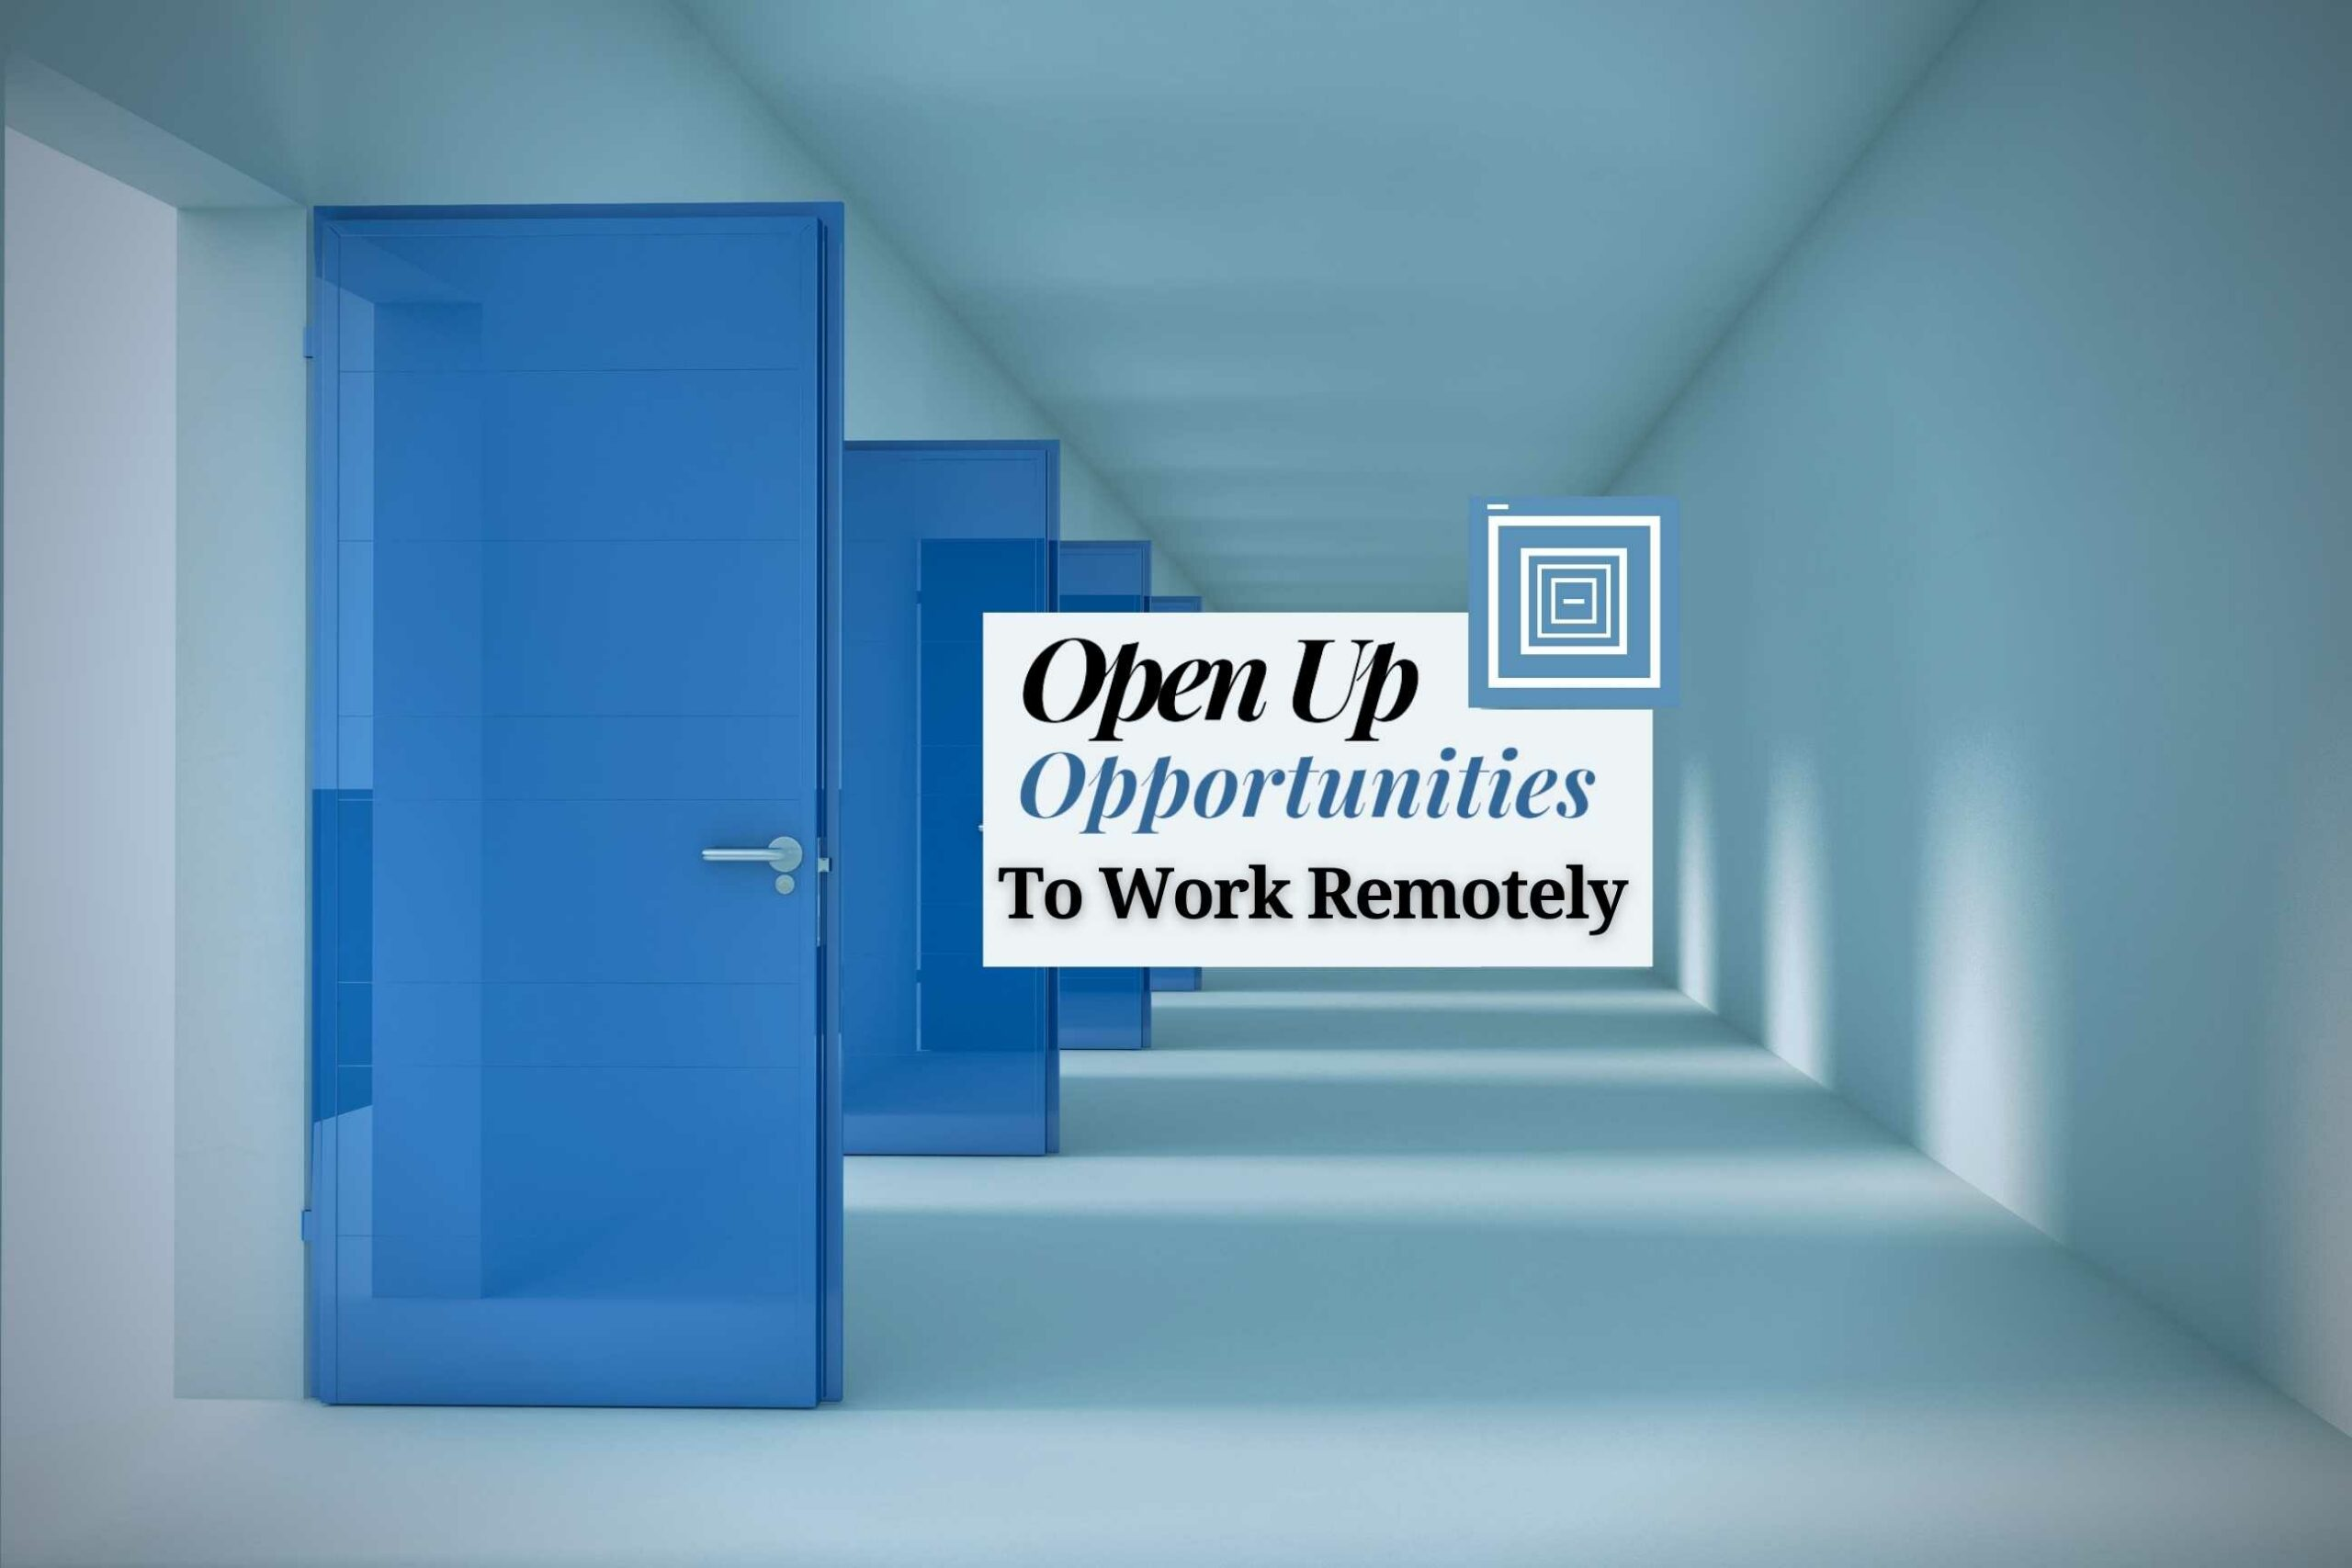 Open Up Opportunities To Work Remotely